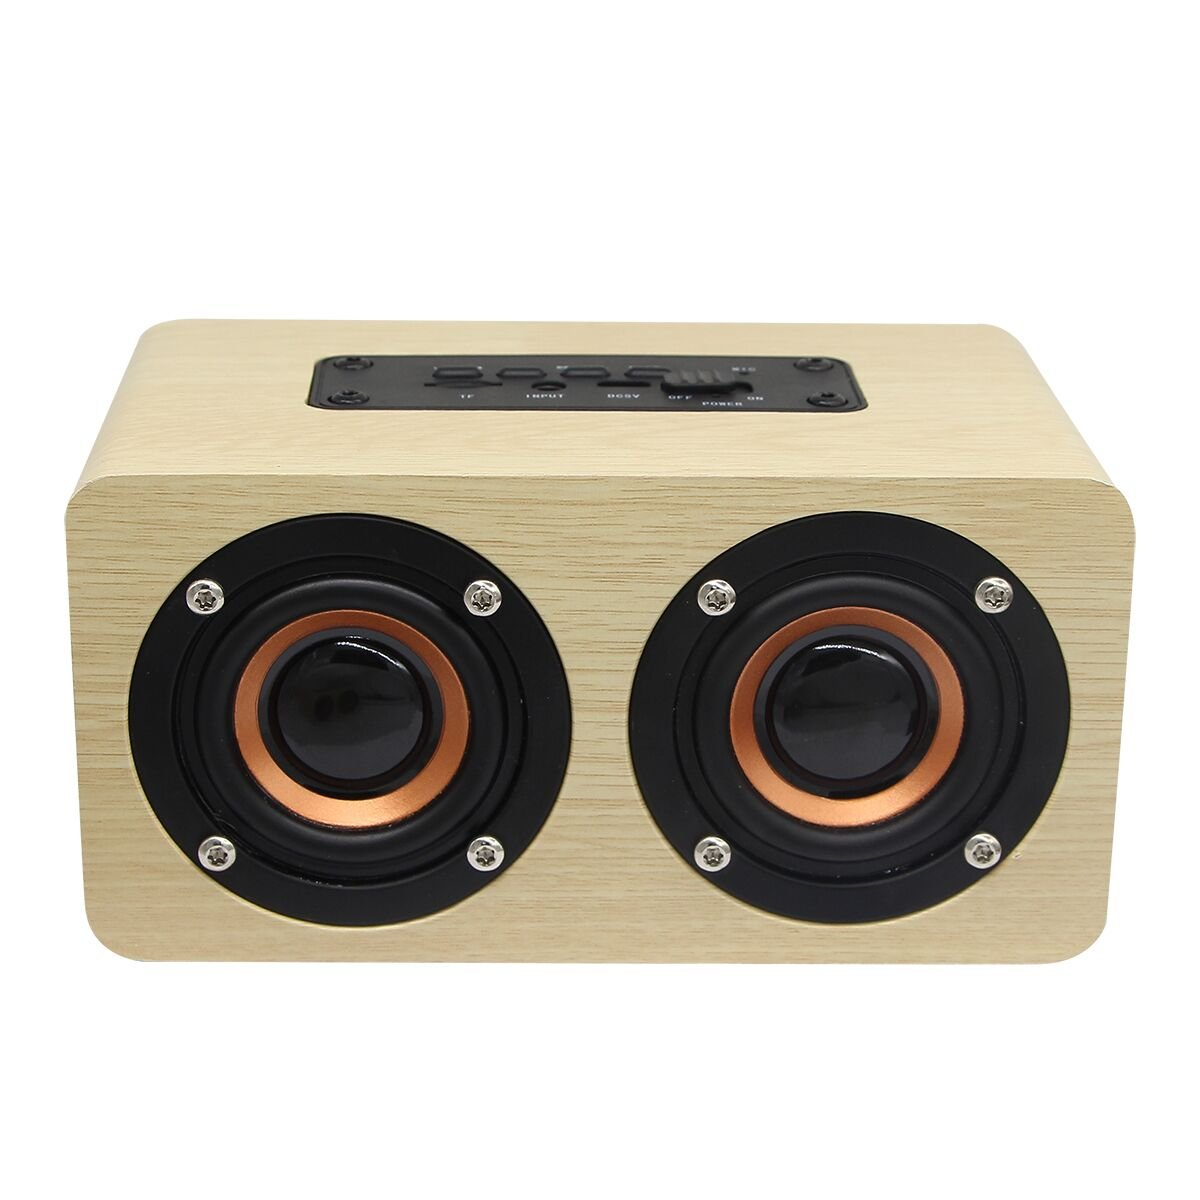 Wooden Portable Bluetooth Speaker,Wireless Bluetooth 4.2 Stereo Speakers Outdoor Music Player Built-in Microphone Support TF Card AUX for Travel, Home, Beach, Outdoors (Yellow wood grain)